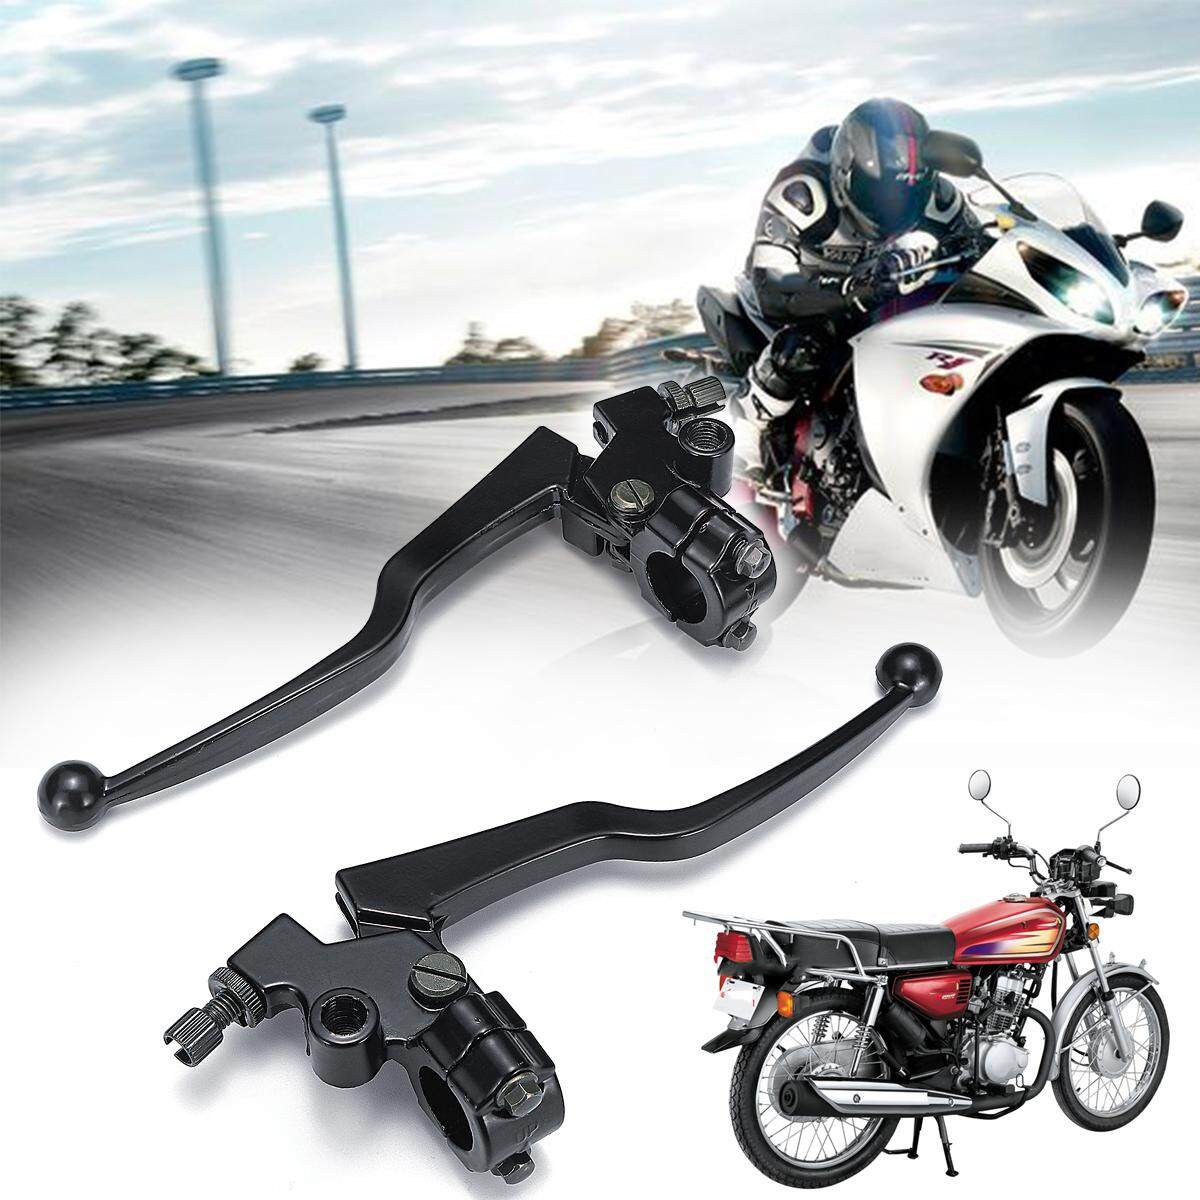 【Free Shipping + Flash Deal】2X Motorcycle Aluminum Alloy Front Brake &  Clutch Lever Set For Honda CG 125